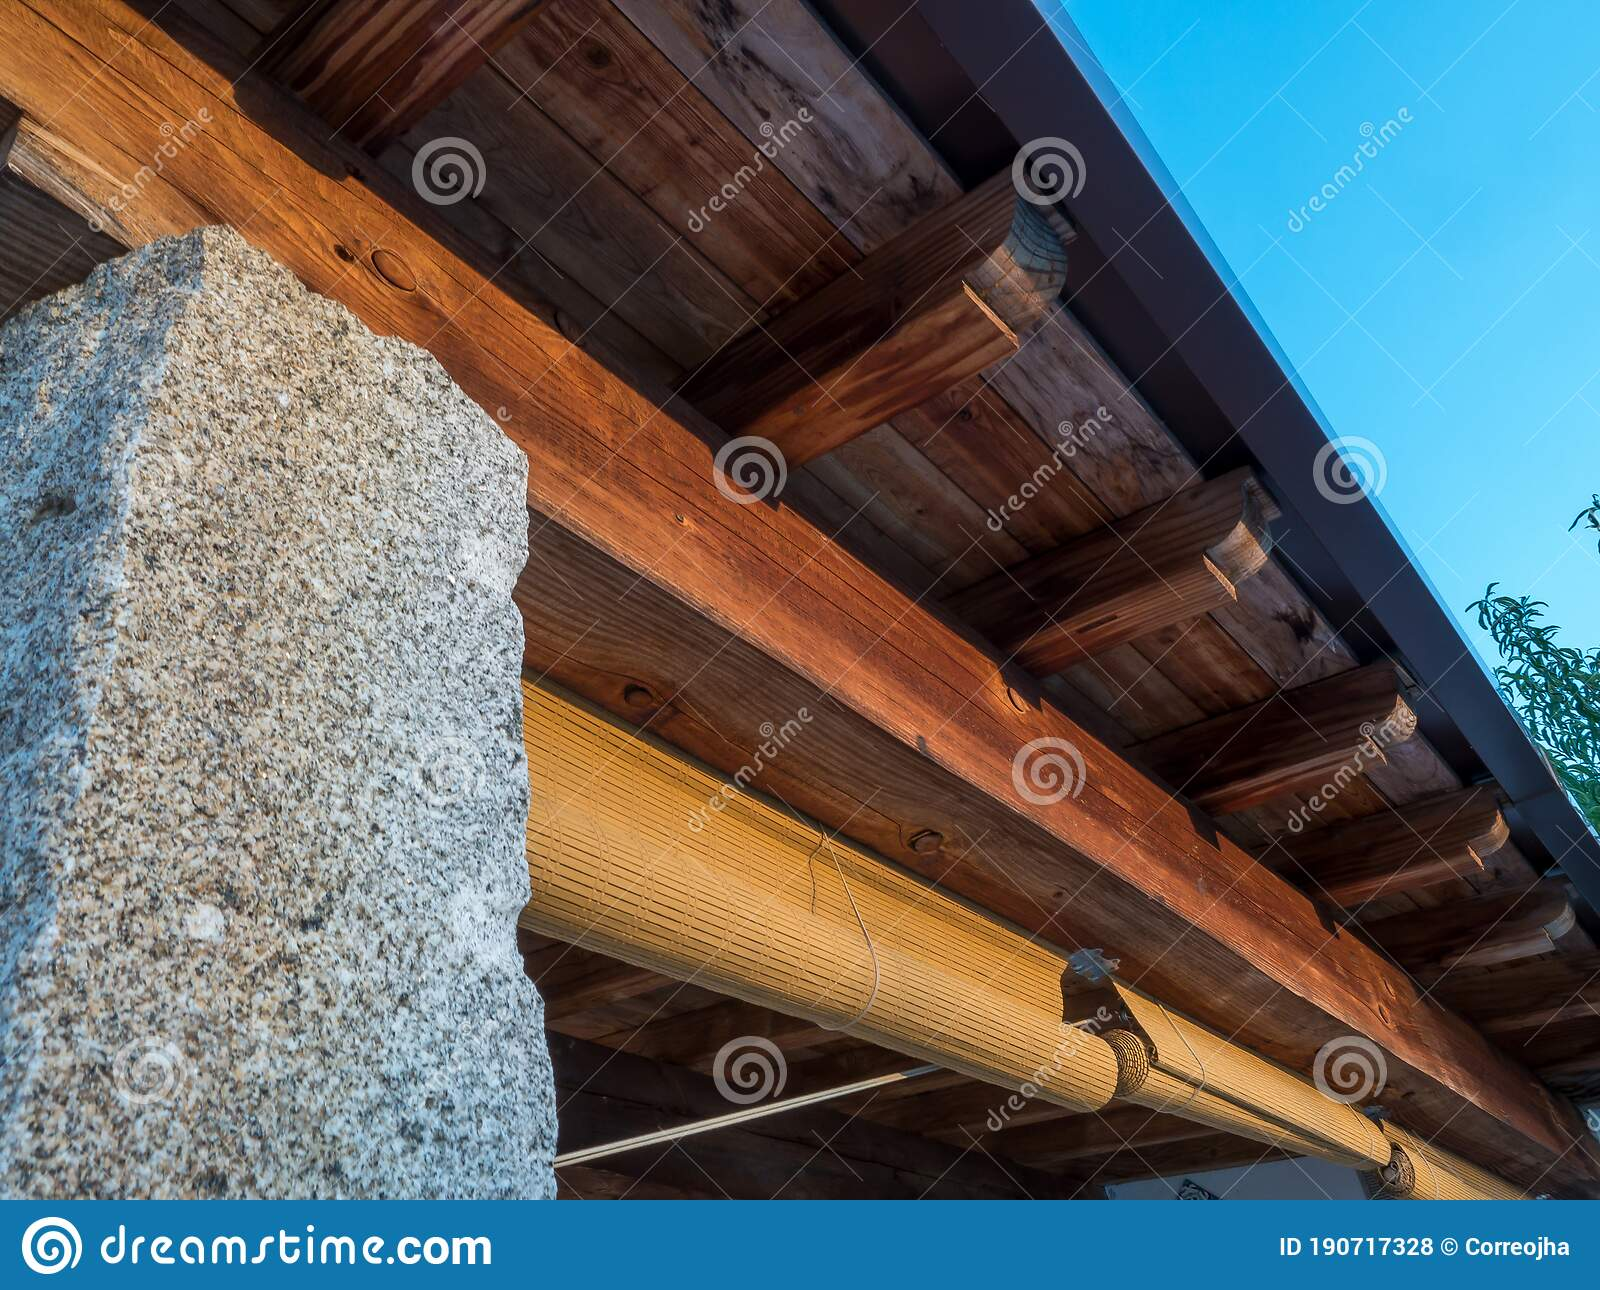 Rustic Porch With Wooden Beams And Stone Columns Stock Photo Image Of Beam Abandoned 190717328